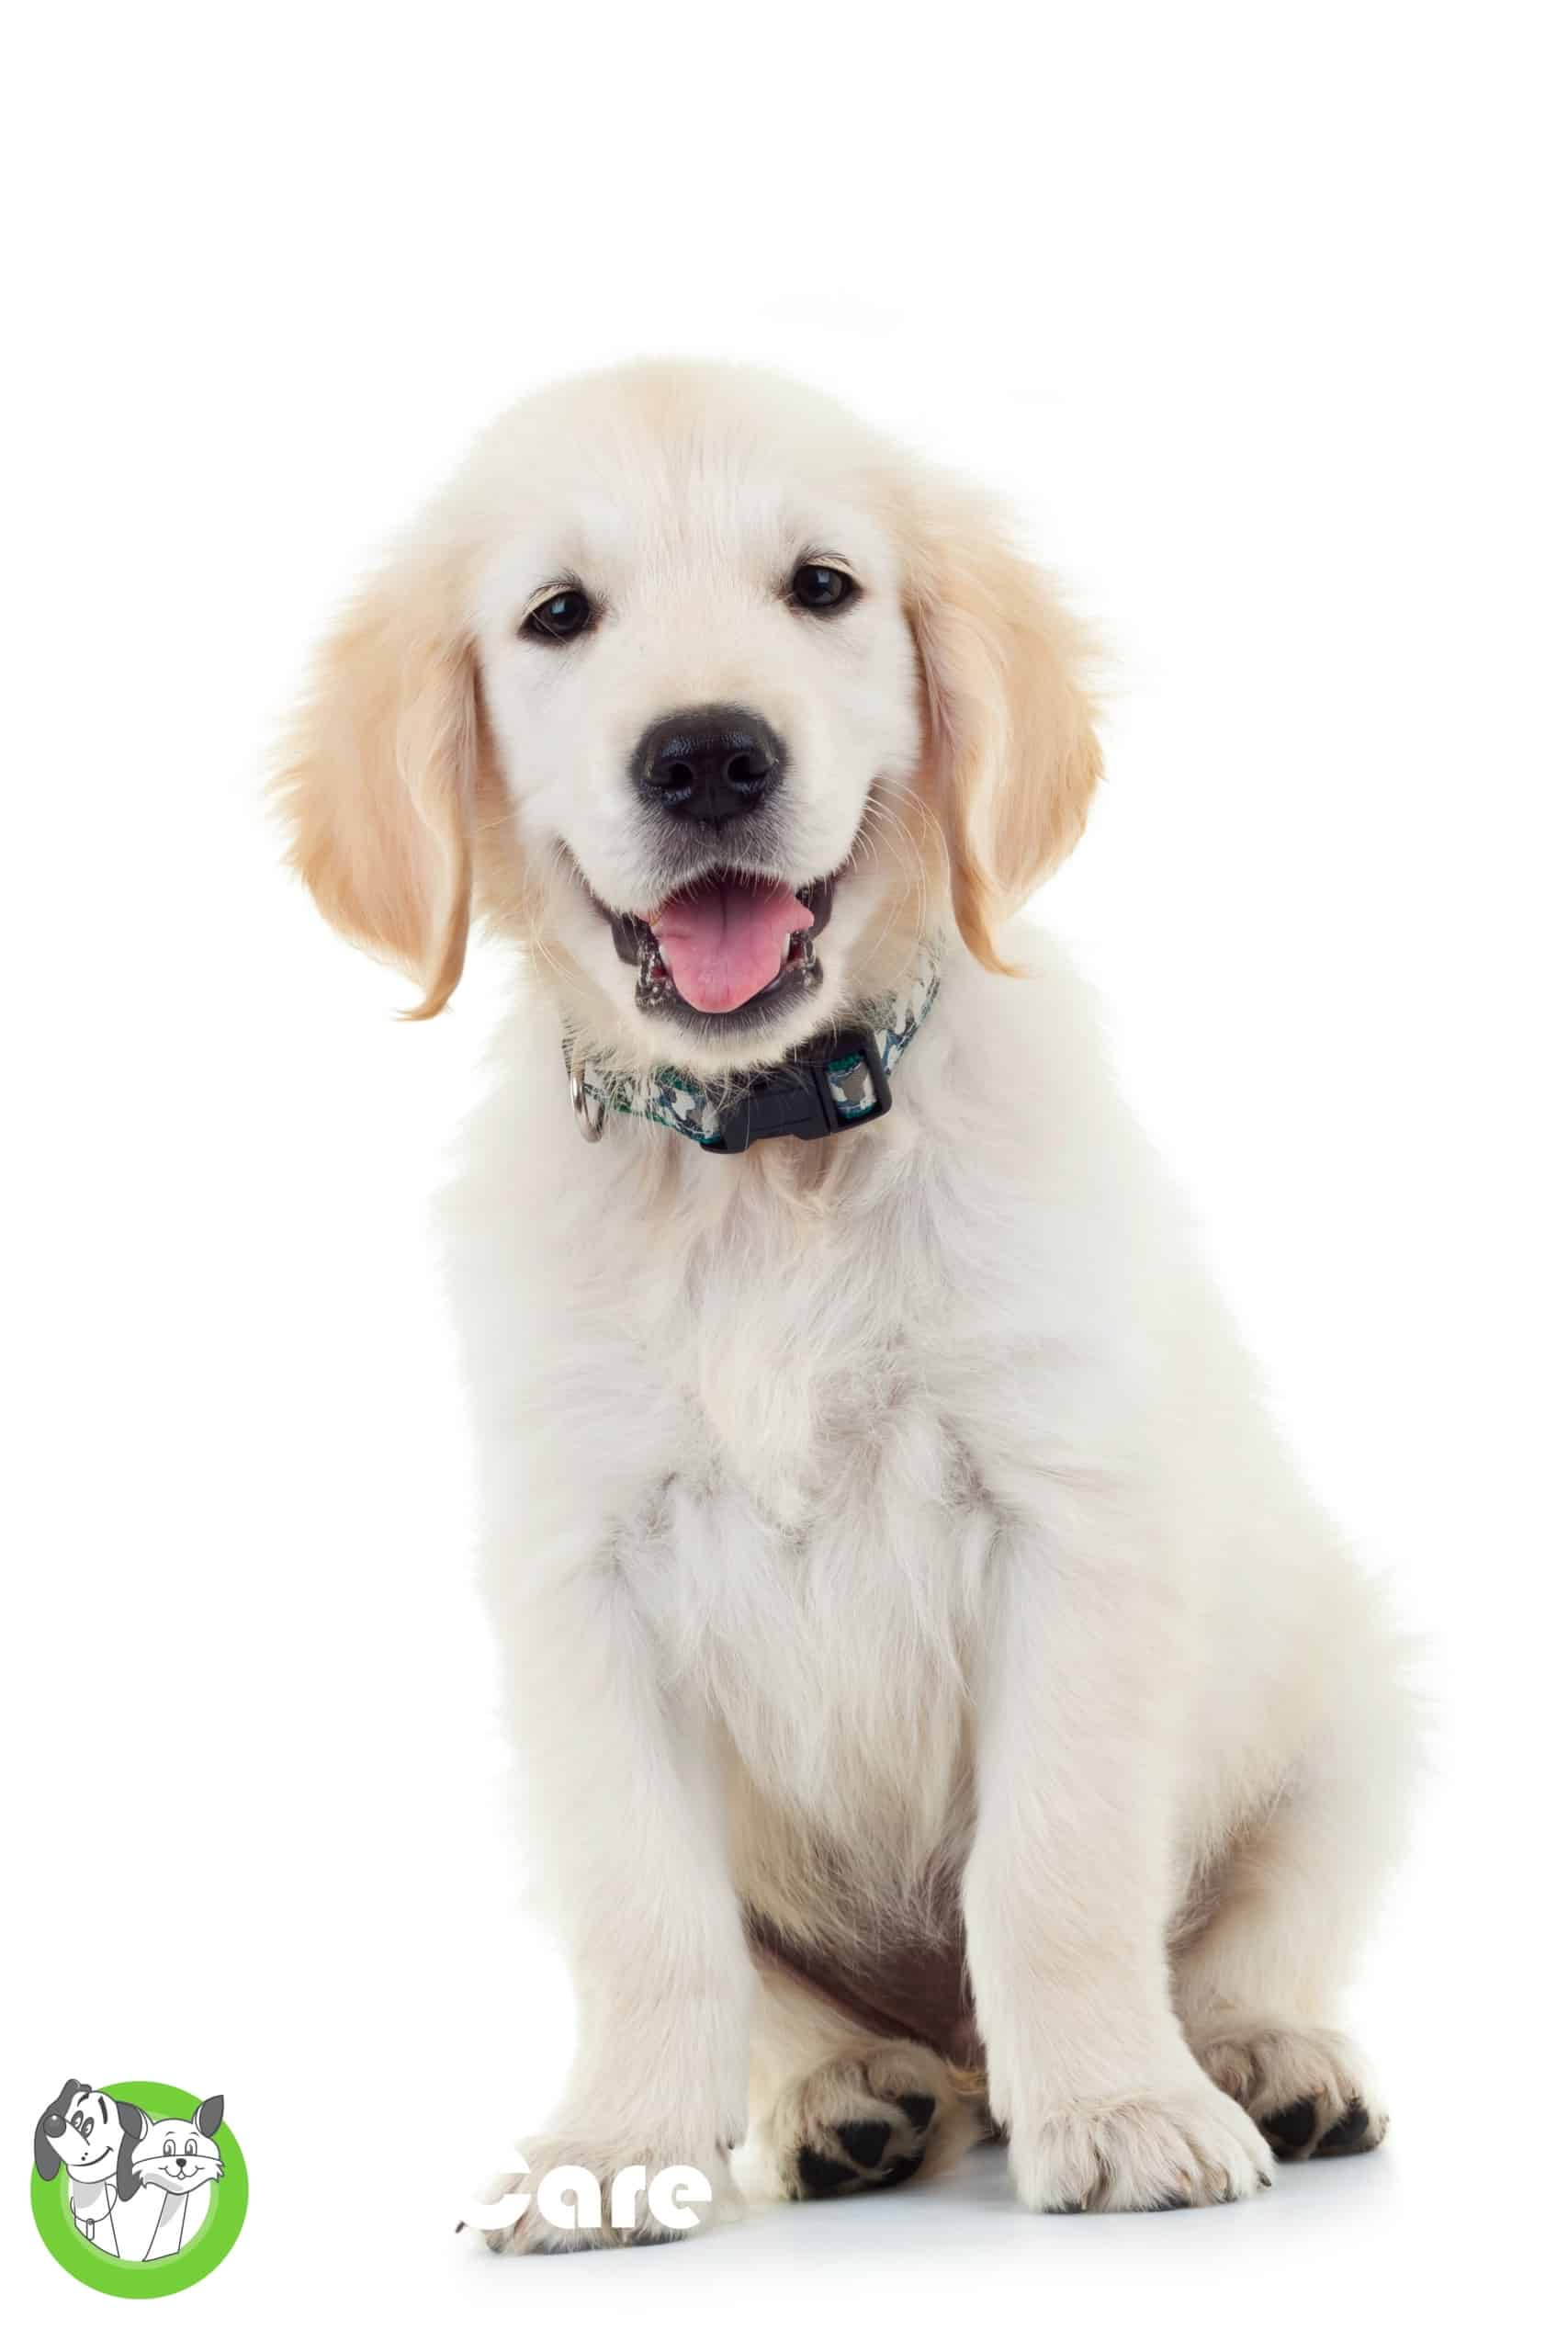 puppy smiling